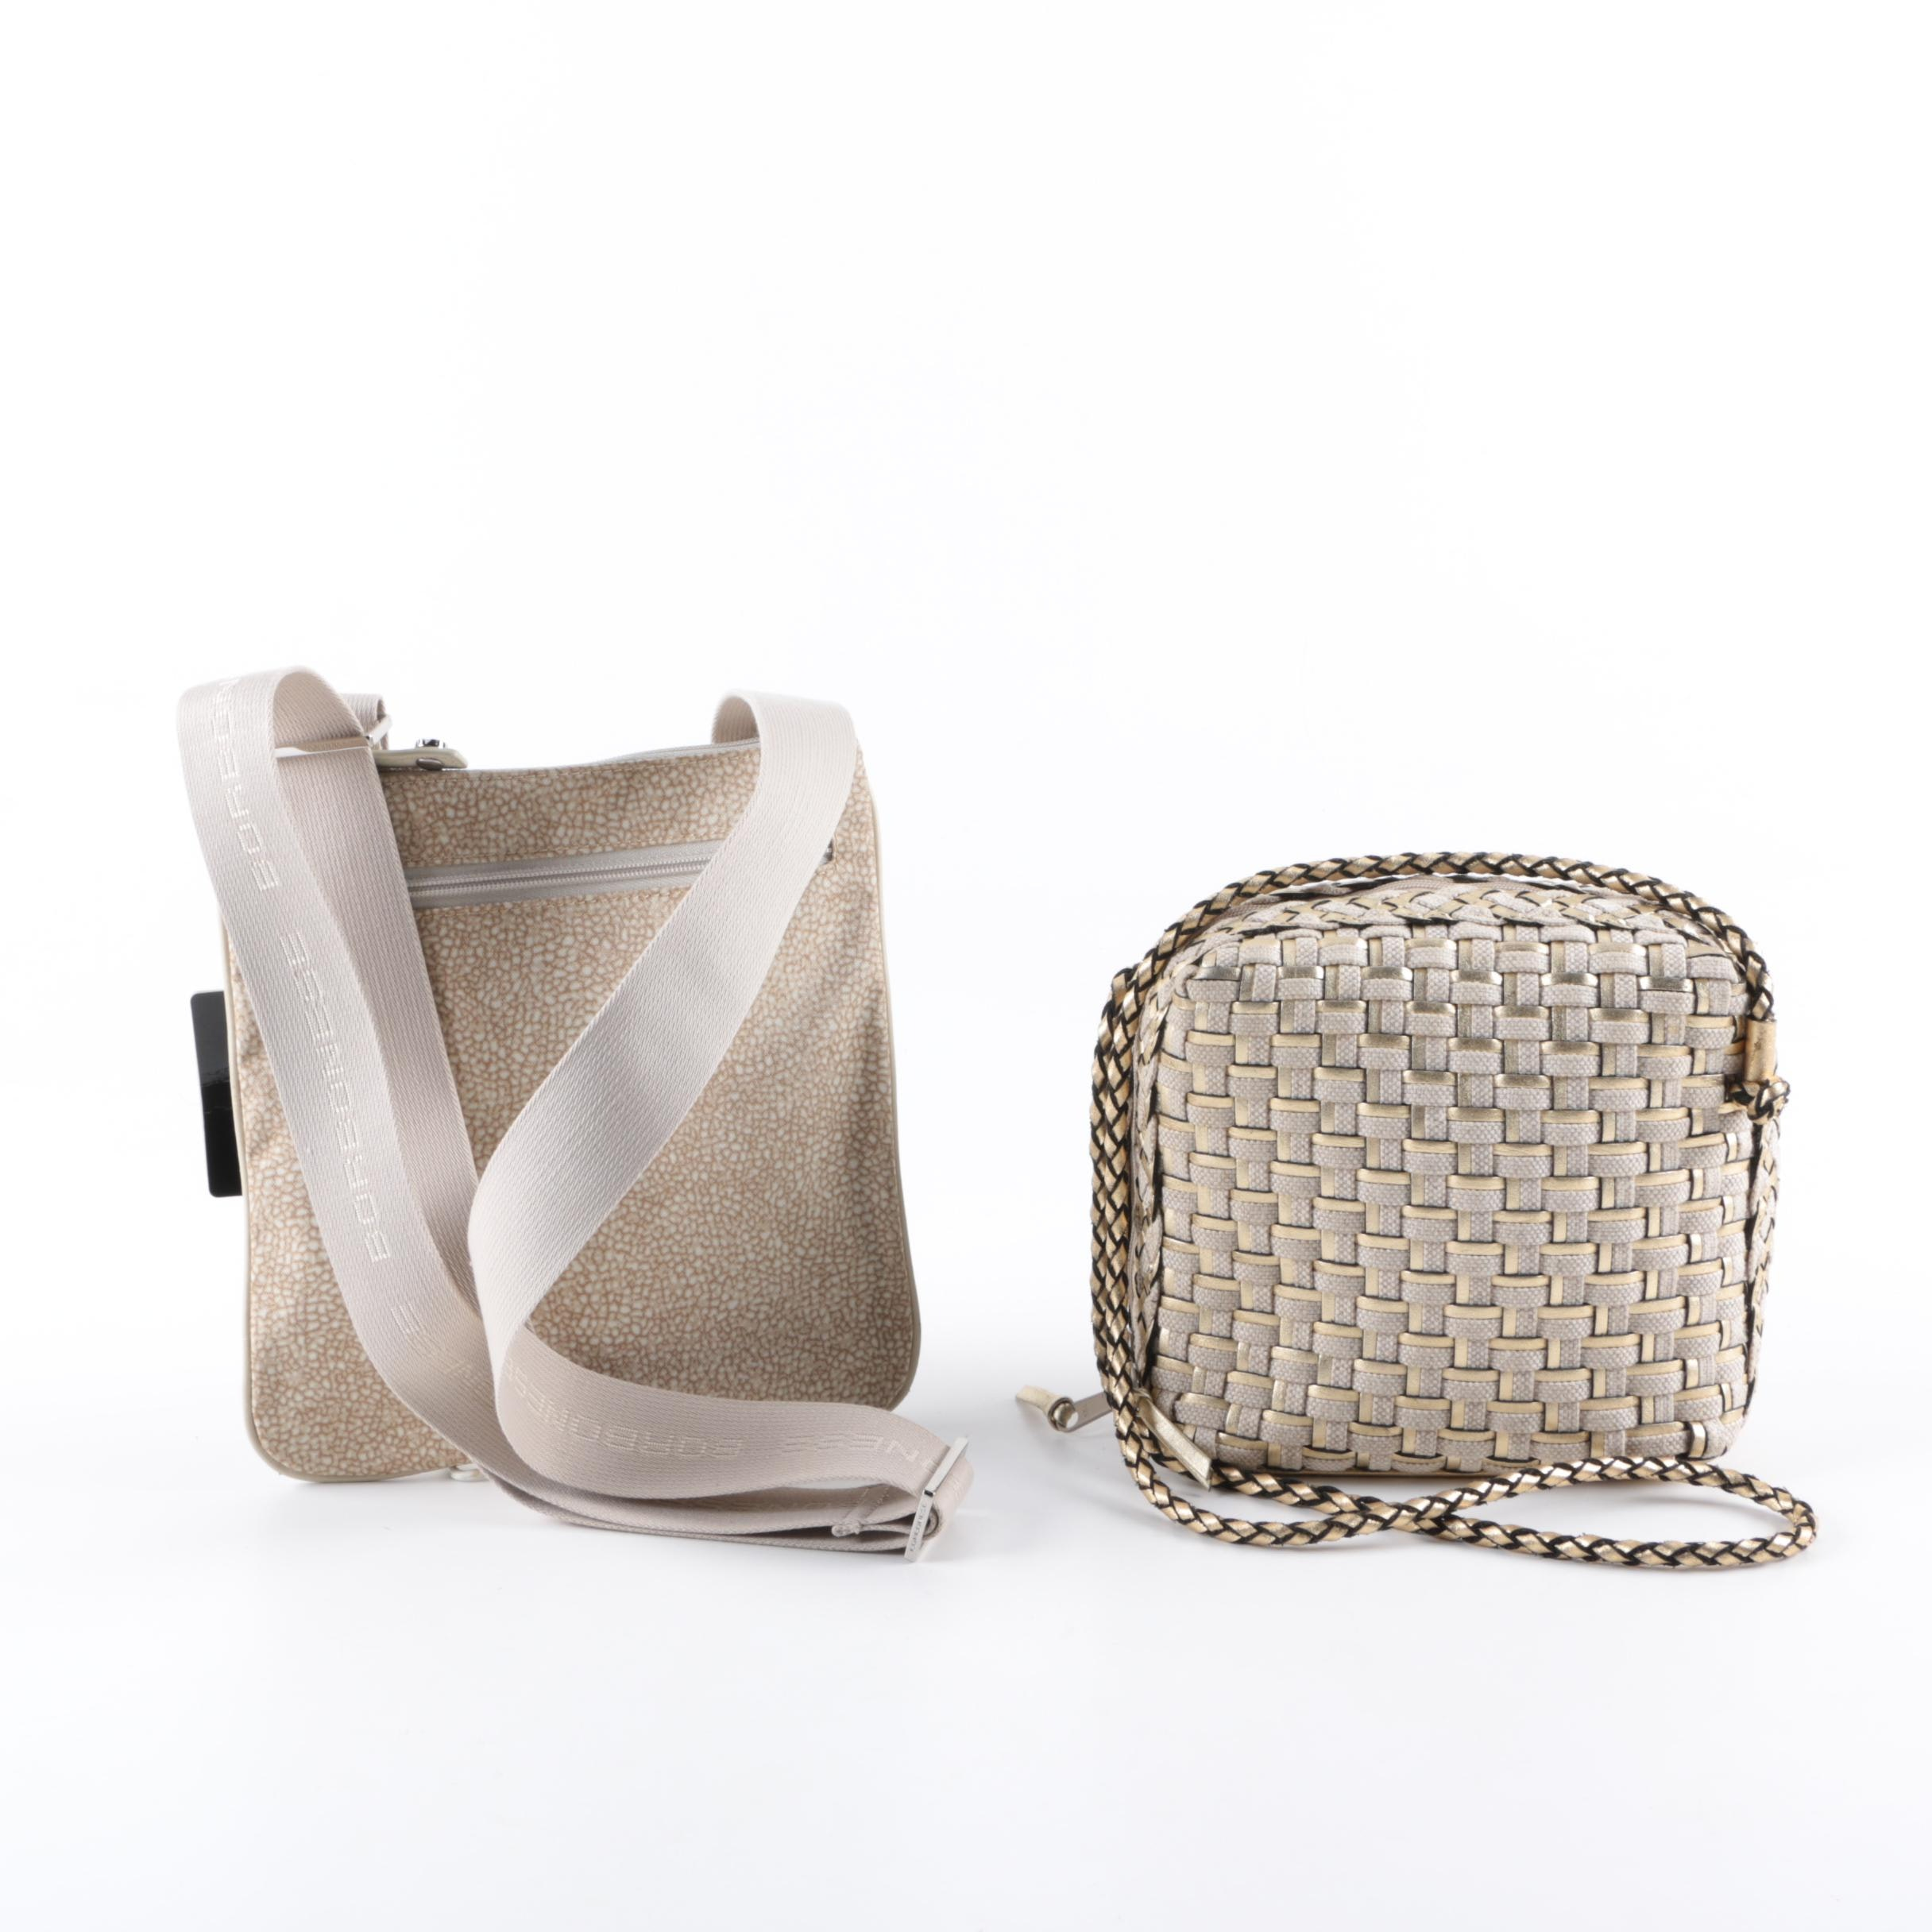 Borbonese and L.J.S. Collection Handbags